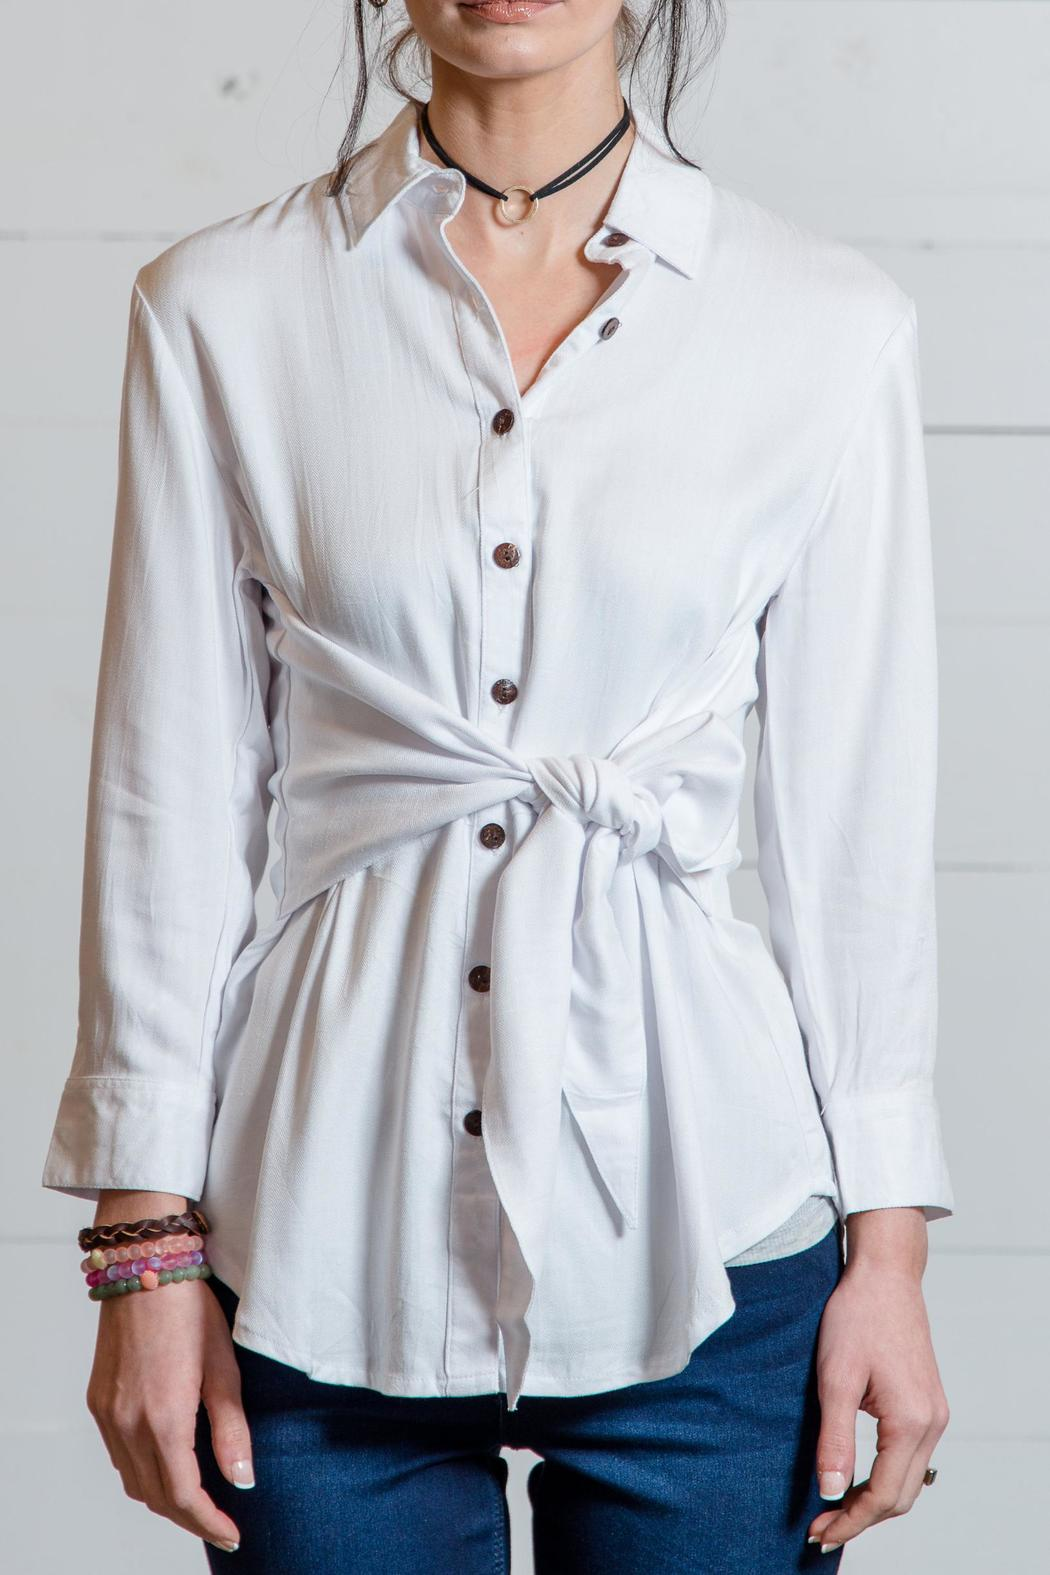 Go fish clothing tie waist blouse from florida by go fish for Go fish clothing